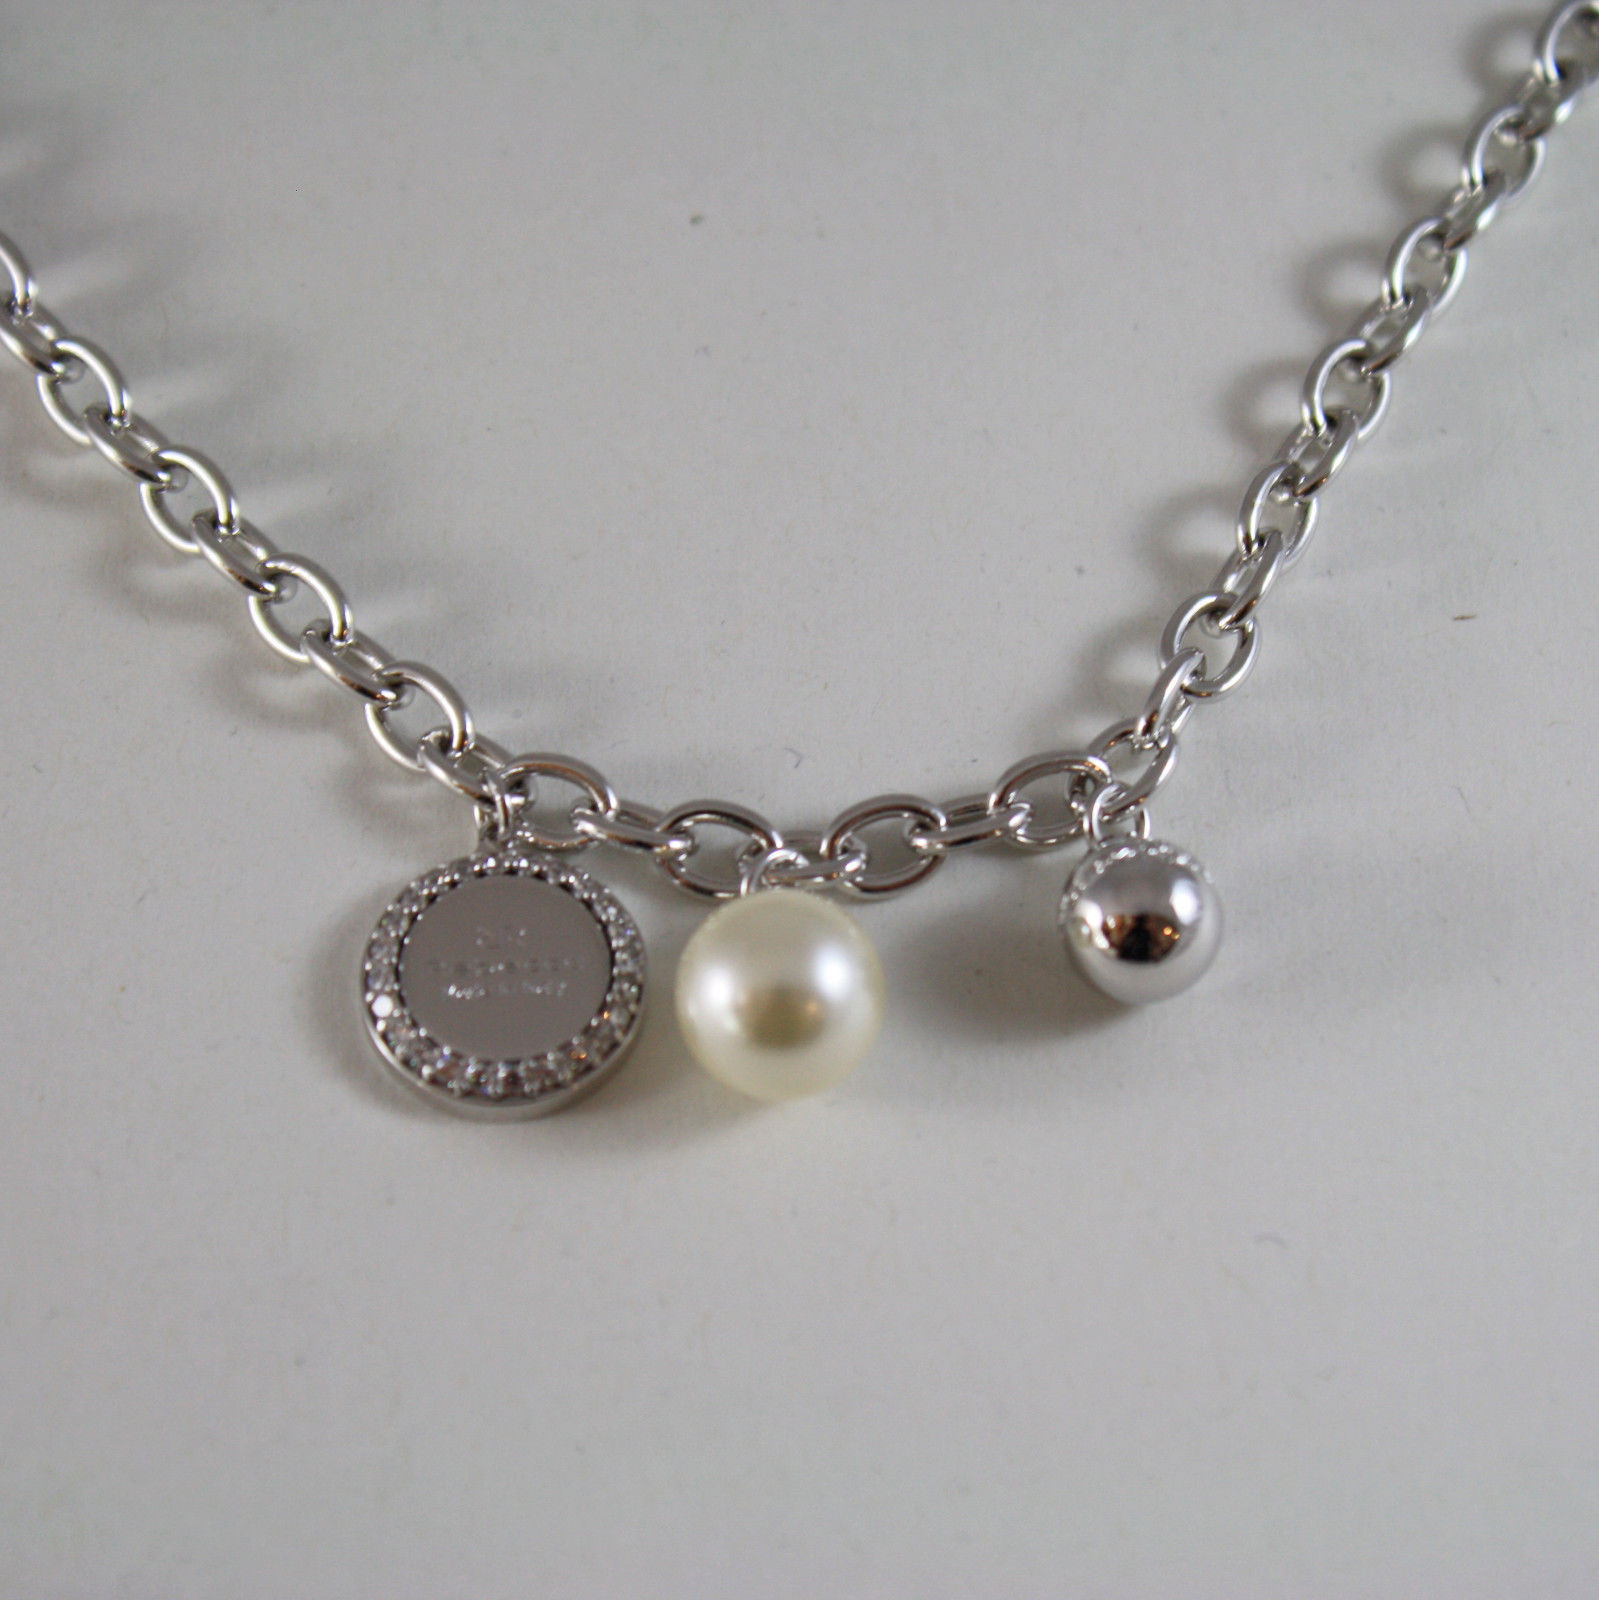 WHITE GOLD PLATED BRONZE REBECCA PEARL NECKLACE HOLLYWOOD BHOKBB01 MADE IN ITALY